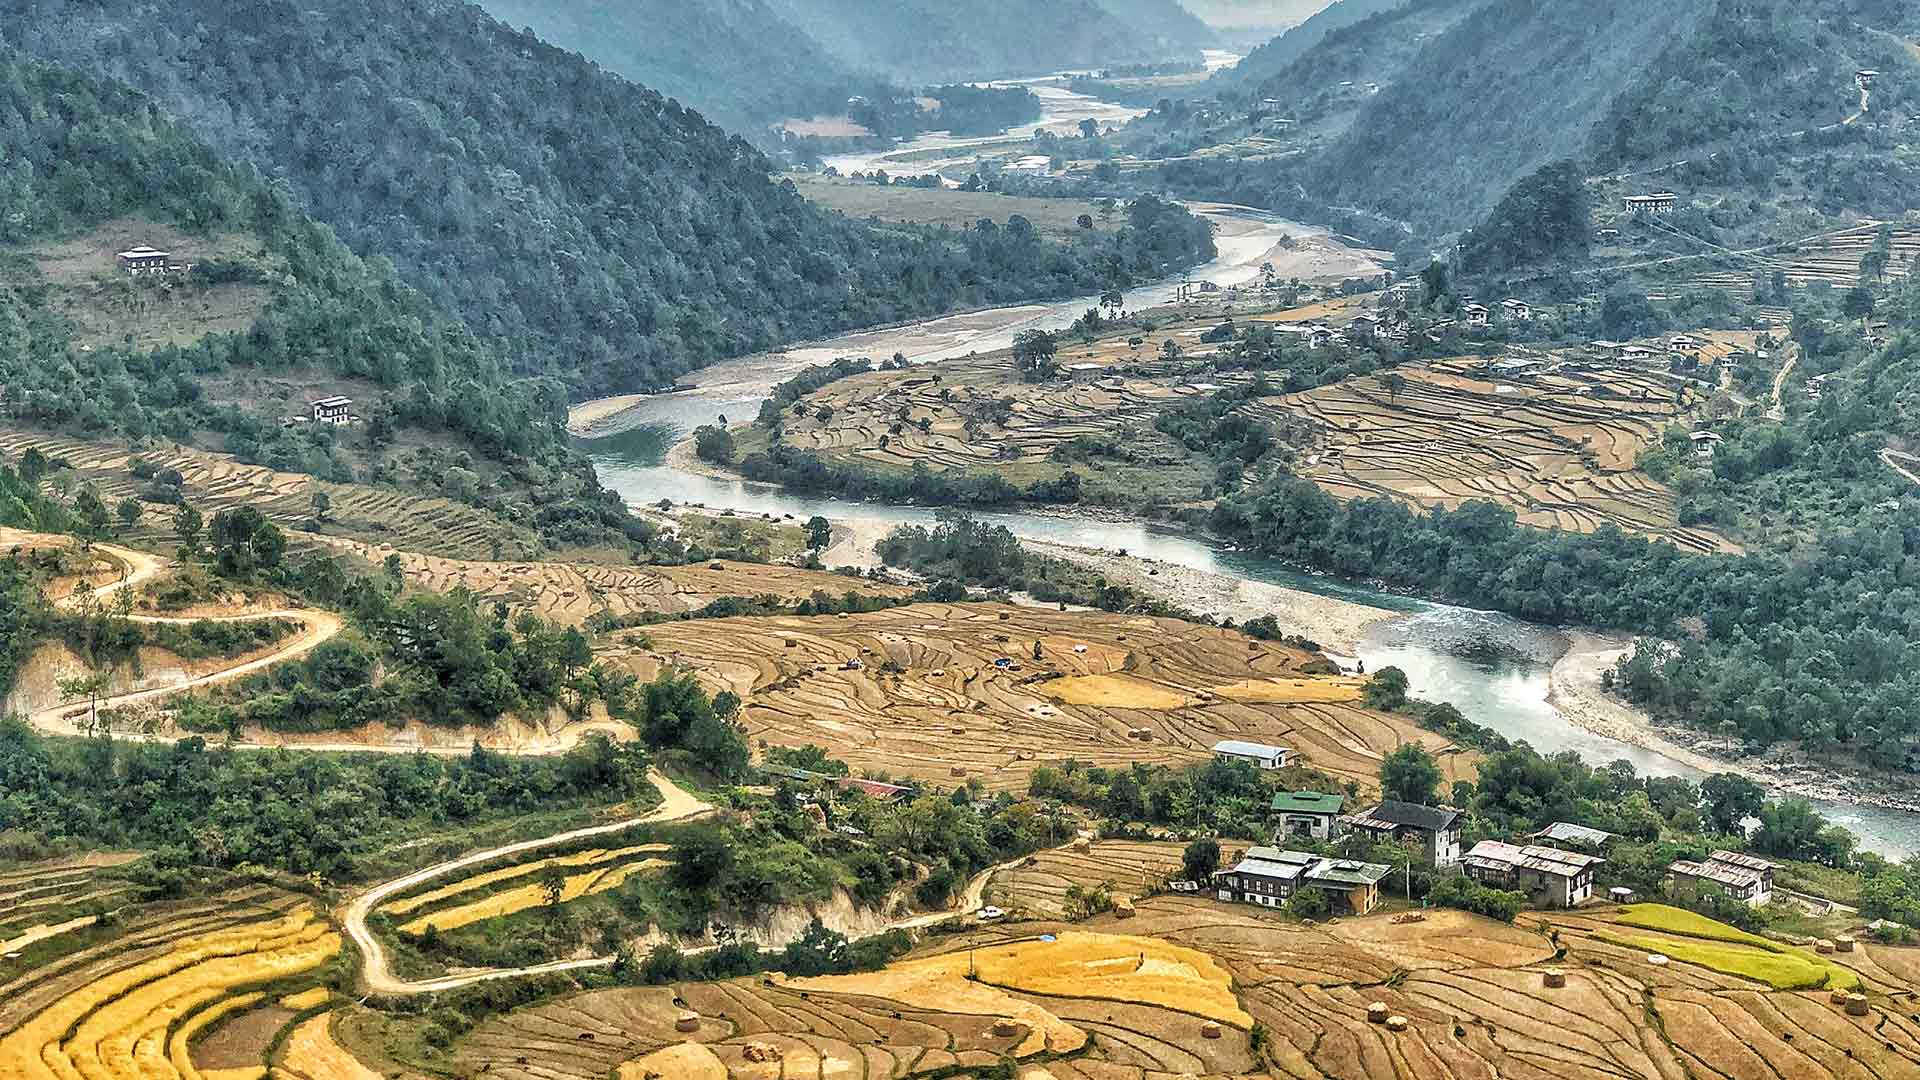 Bhutan river and countryside, aerial view